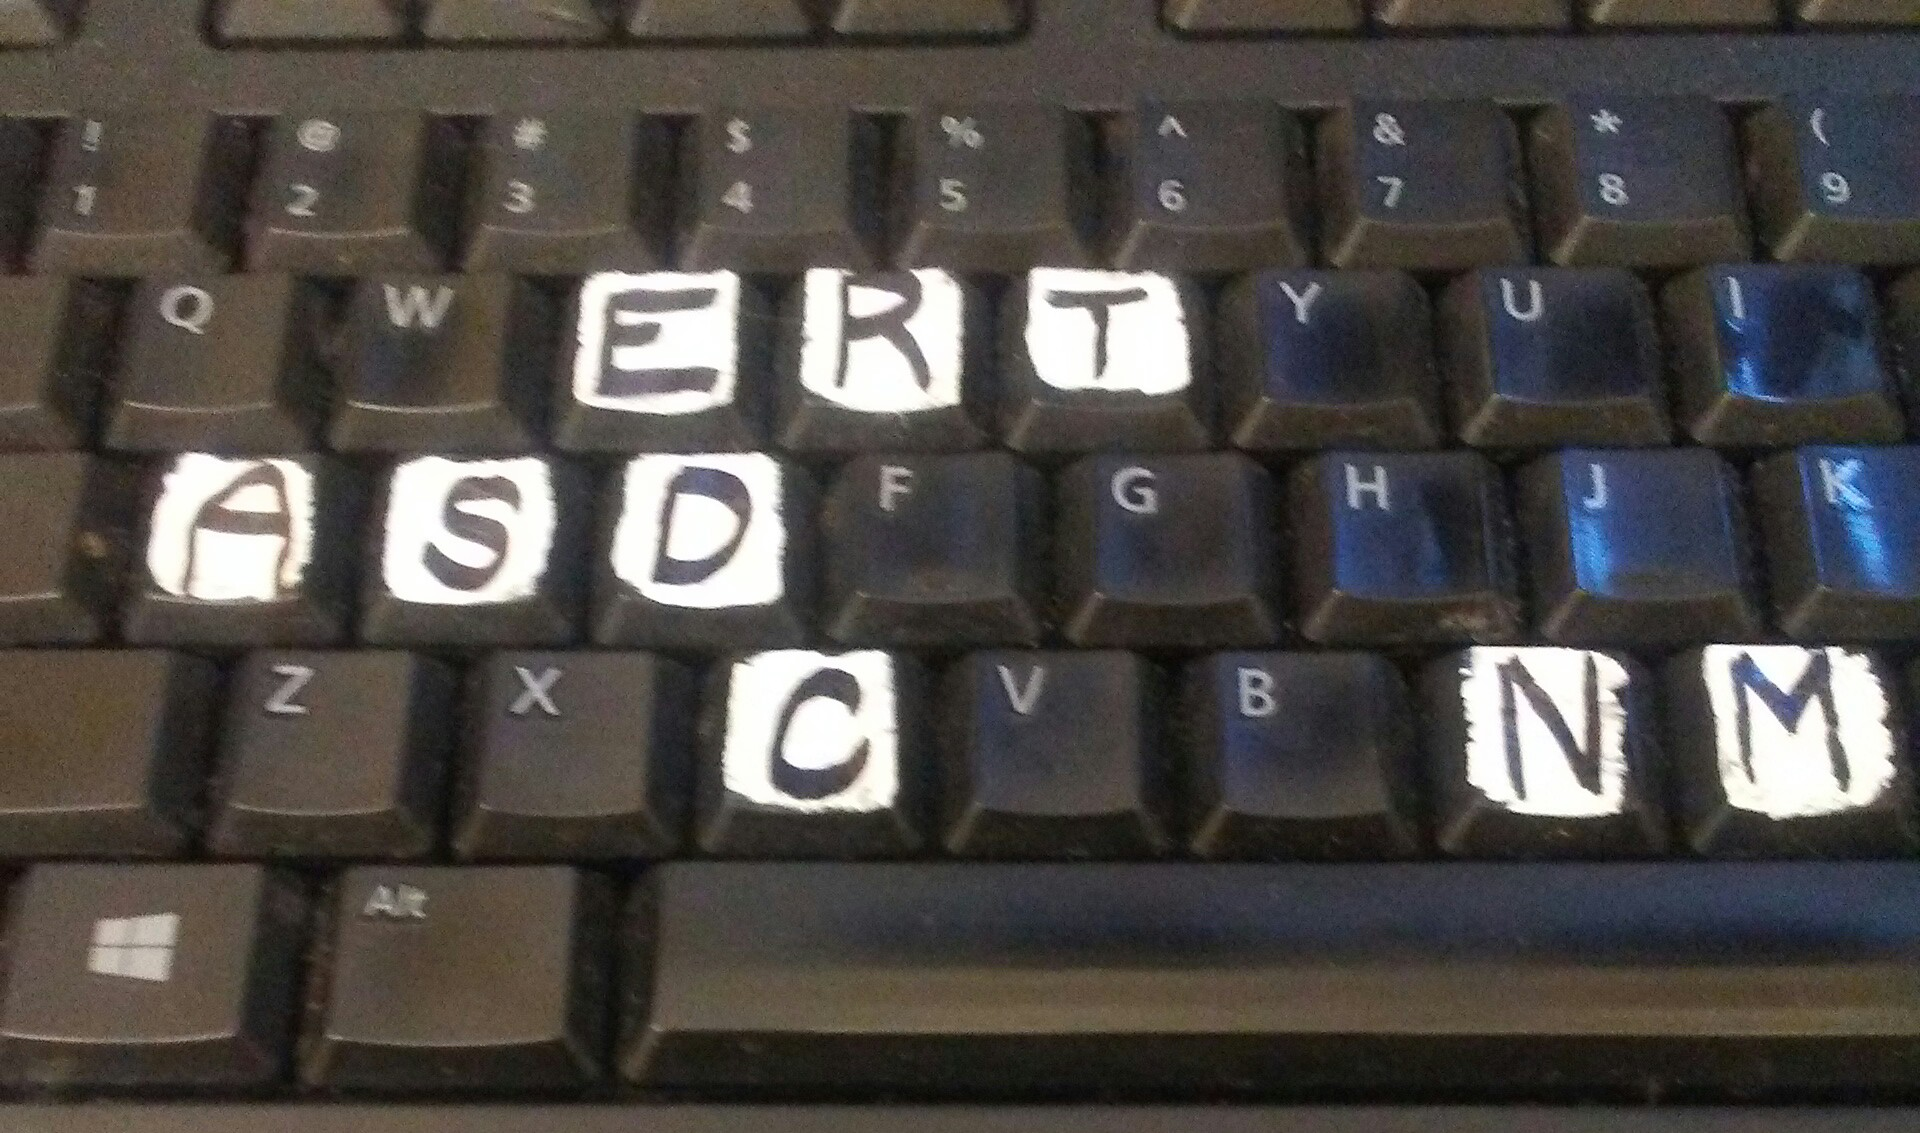 Picture of Replace Letters (or Make Bigger Letters) on Computer Keyboard